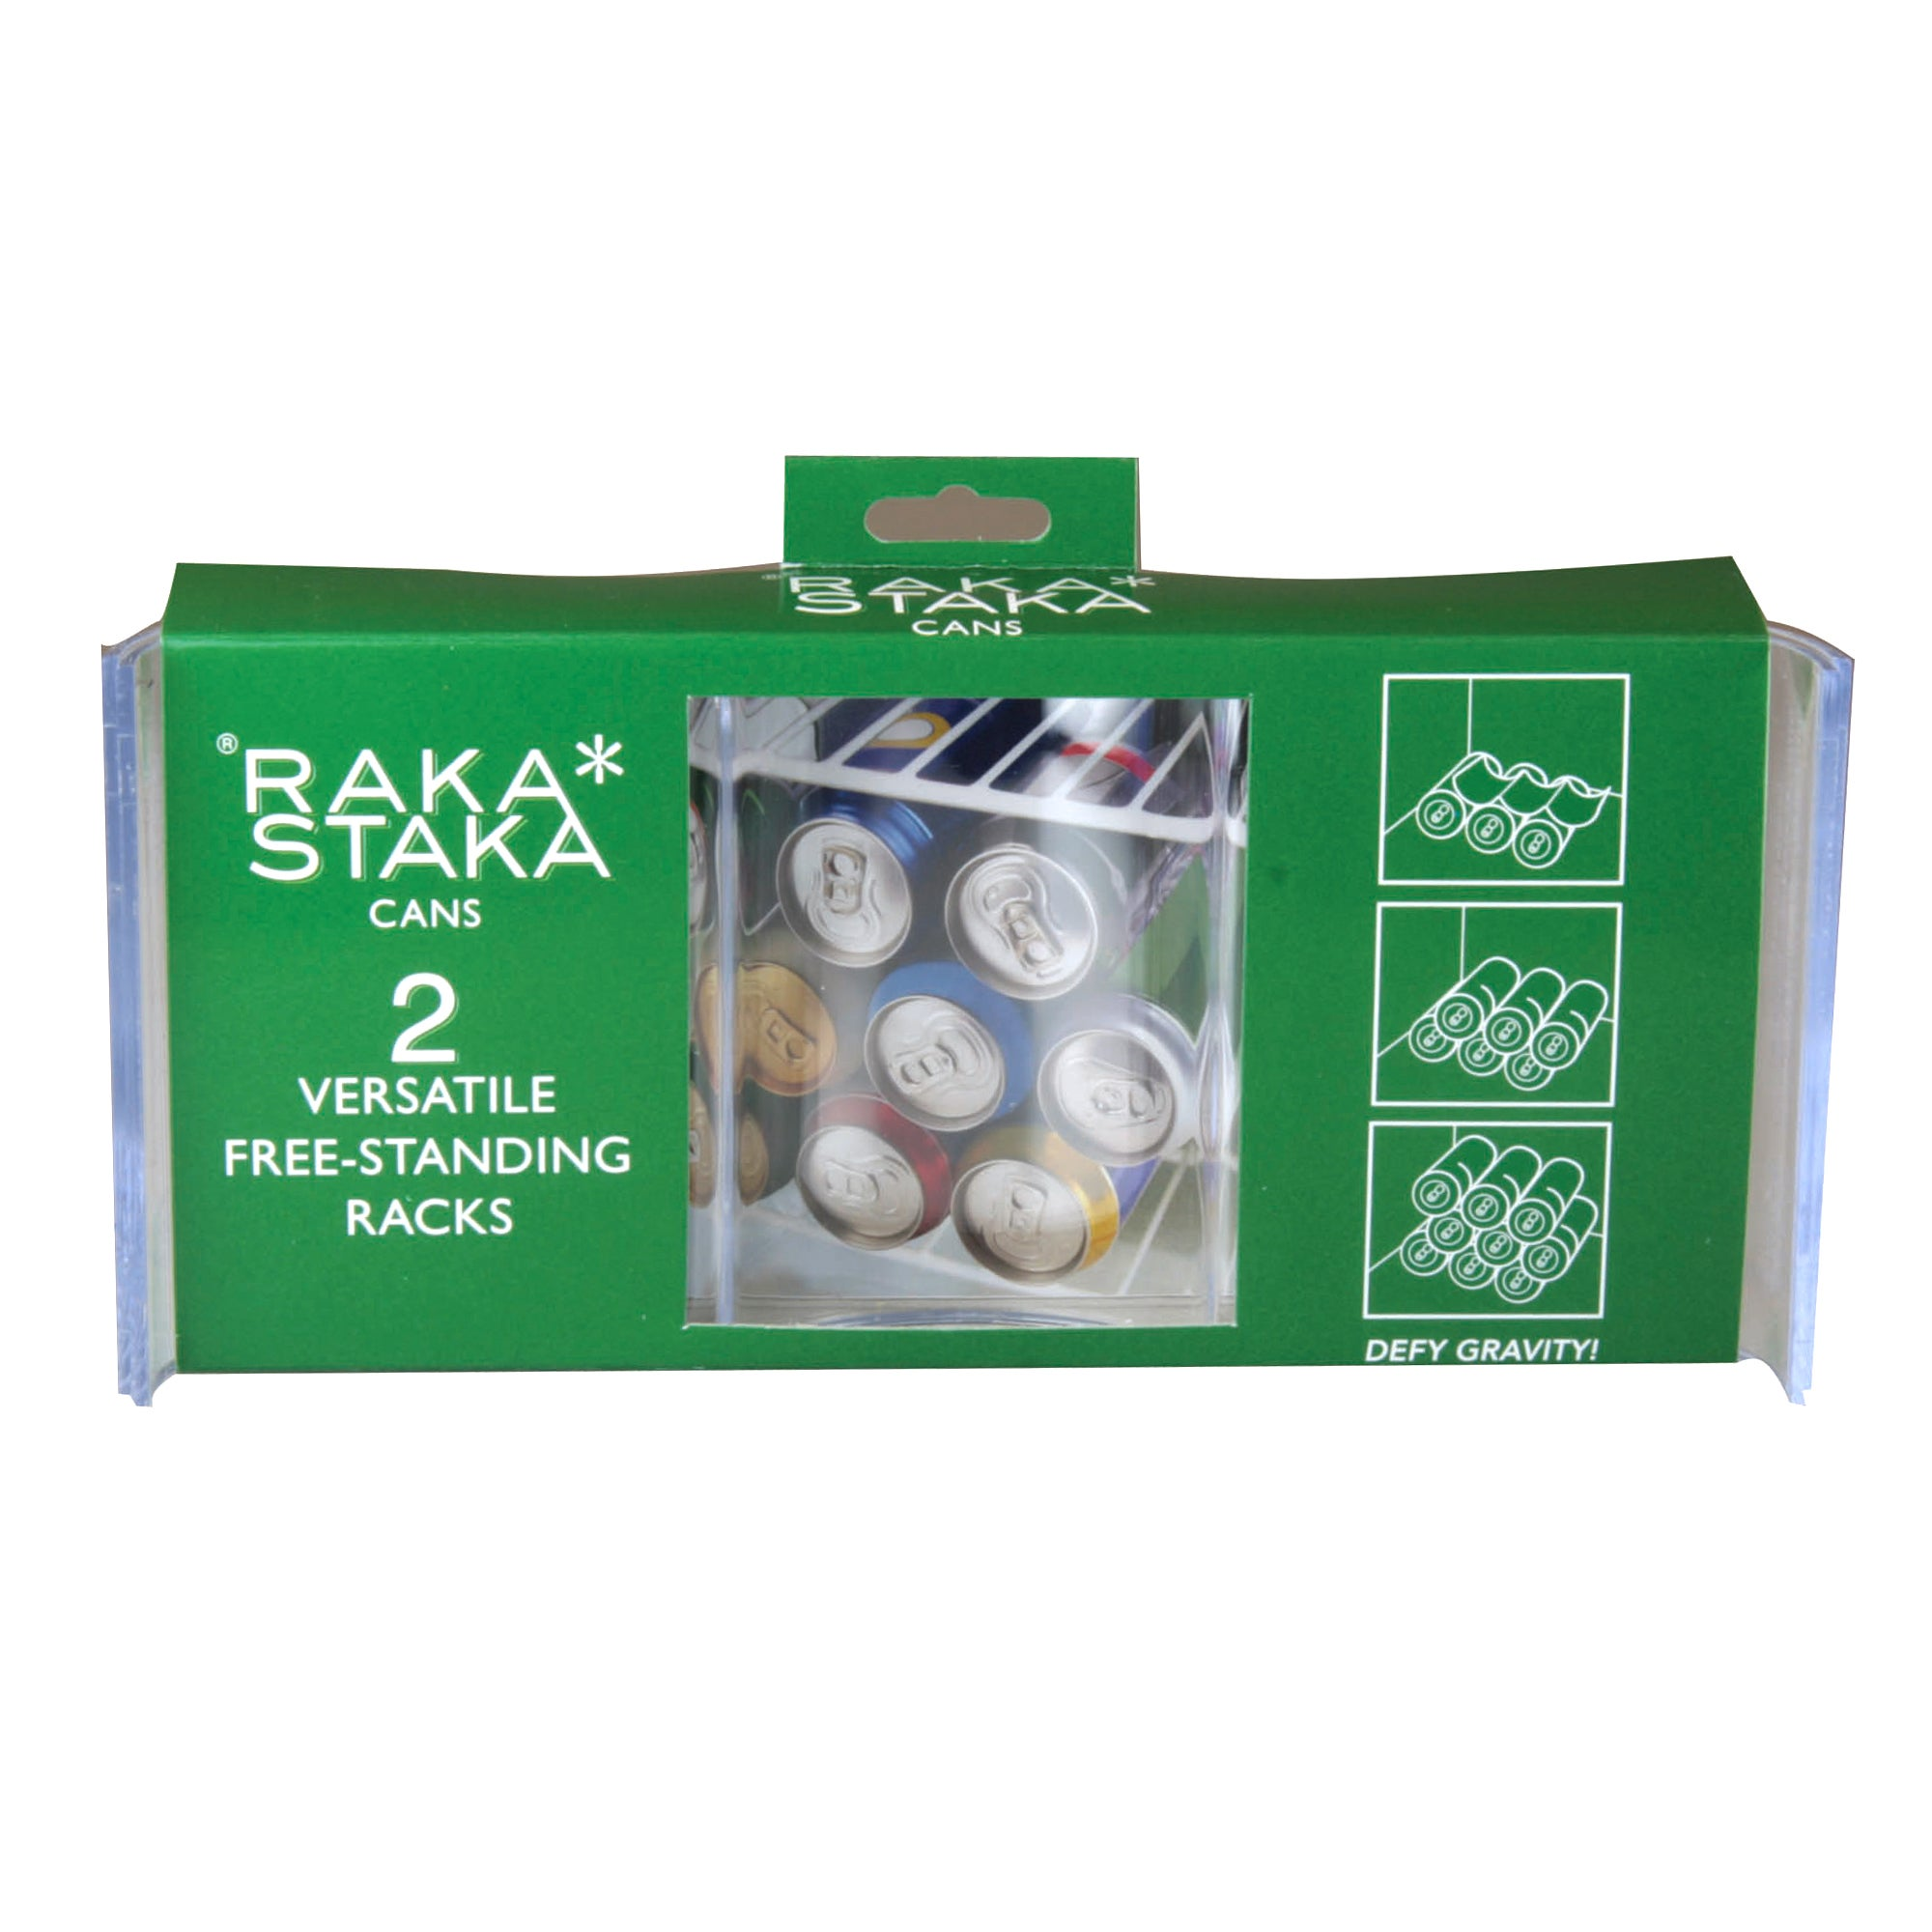 RakaStaka Pack of 2 Can Holders